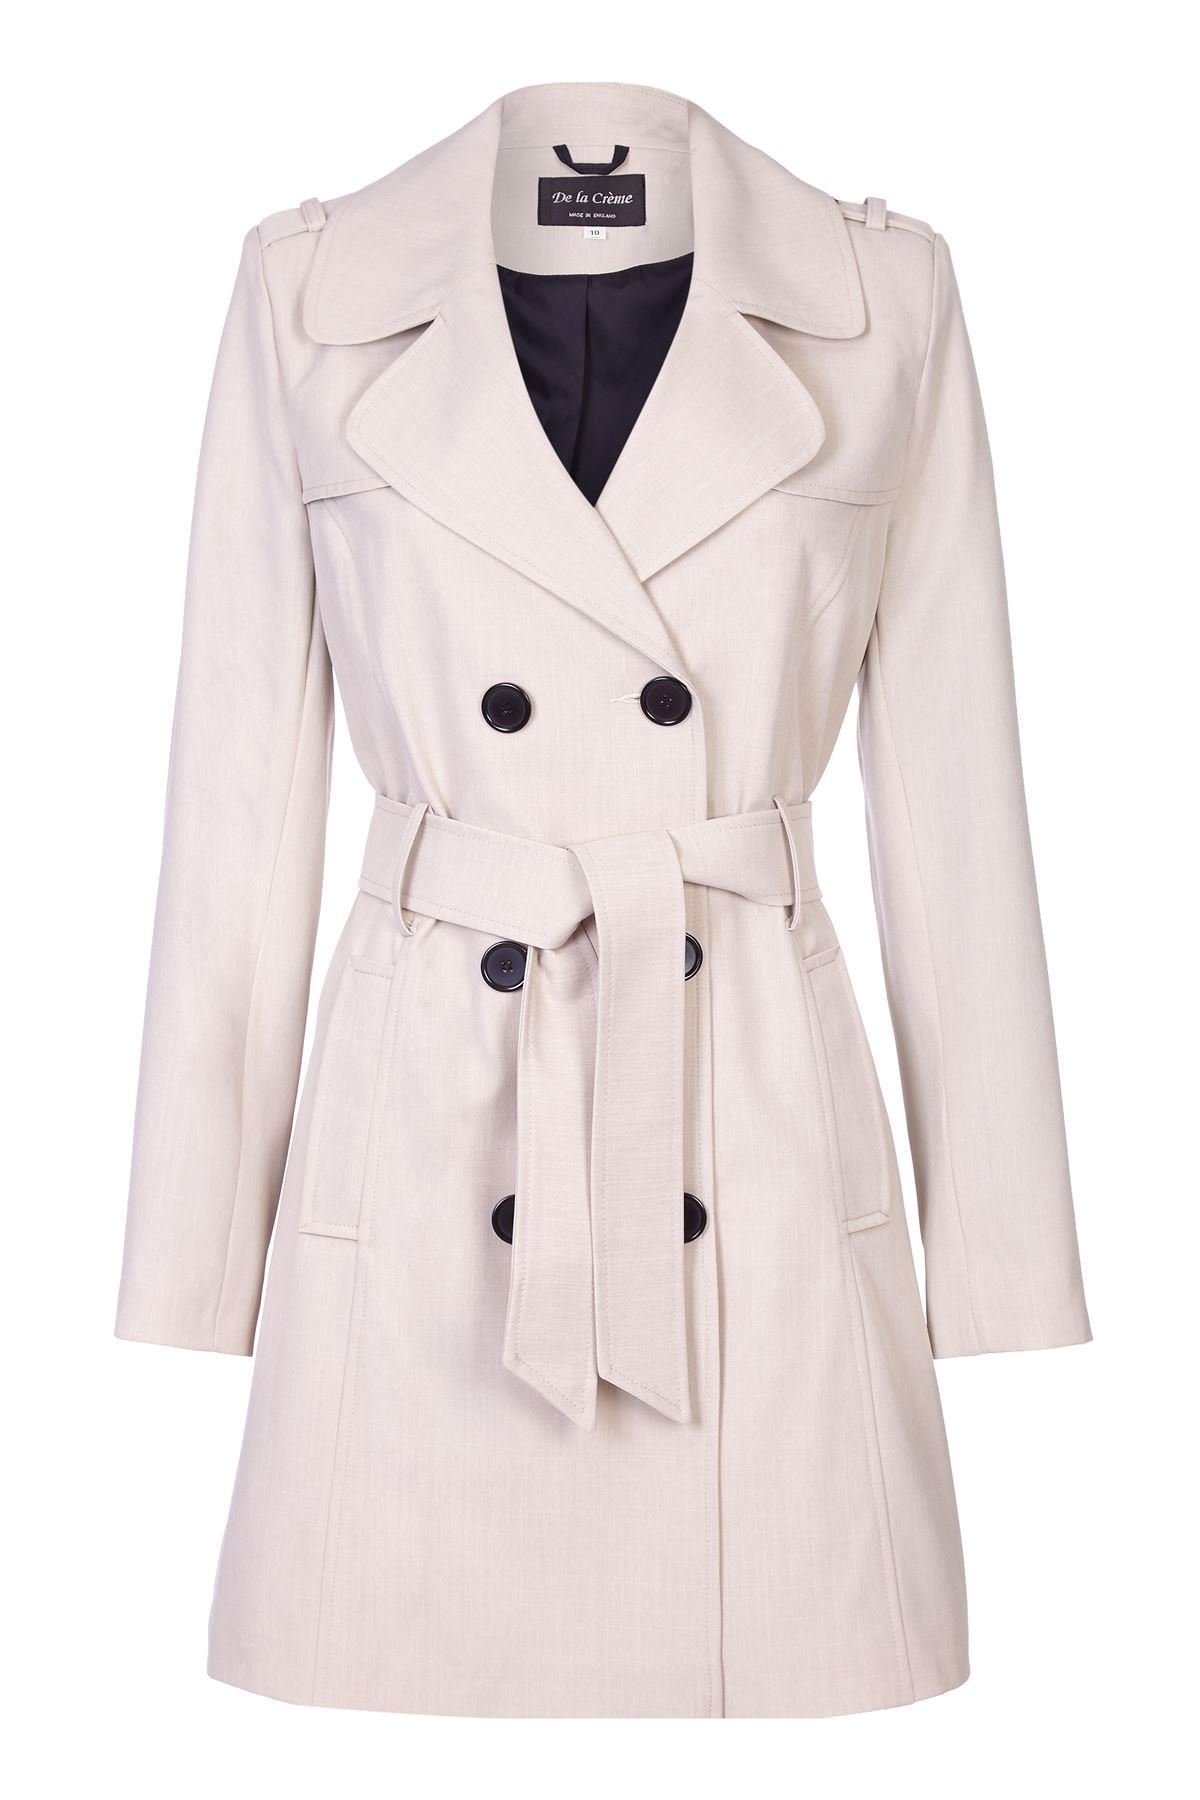 De La Creme - Womens Spring Tie Belted Trench Coat